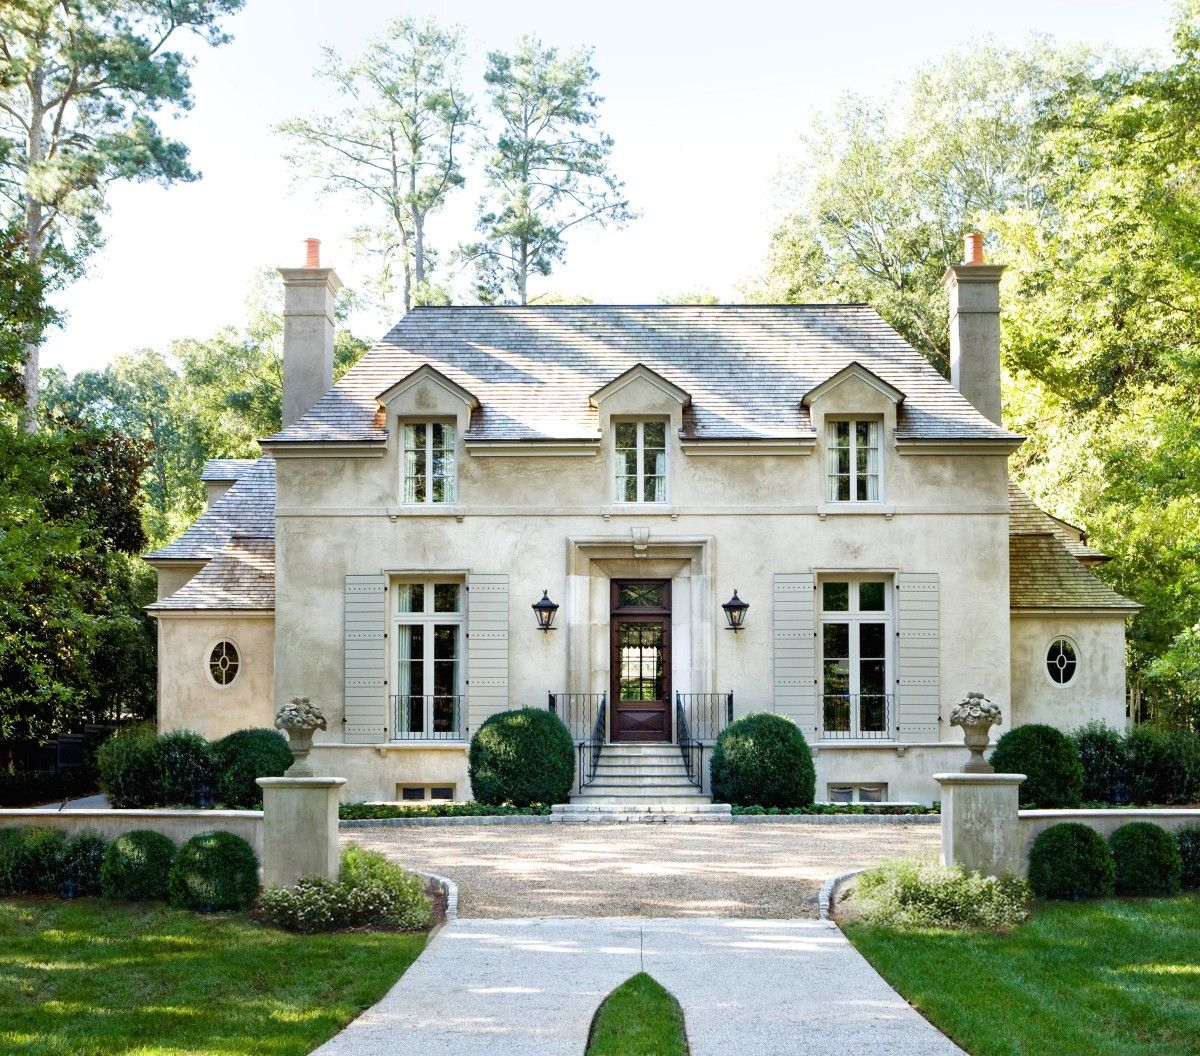 Exterior Of Homes Designs | Architecture, House and Future on french country home 2 000 sf, french country style homes, french country plans, french country home designs, french country landscaping,